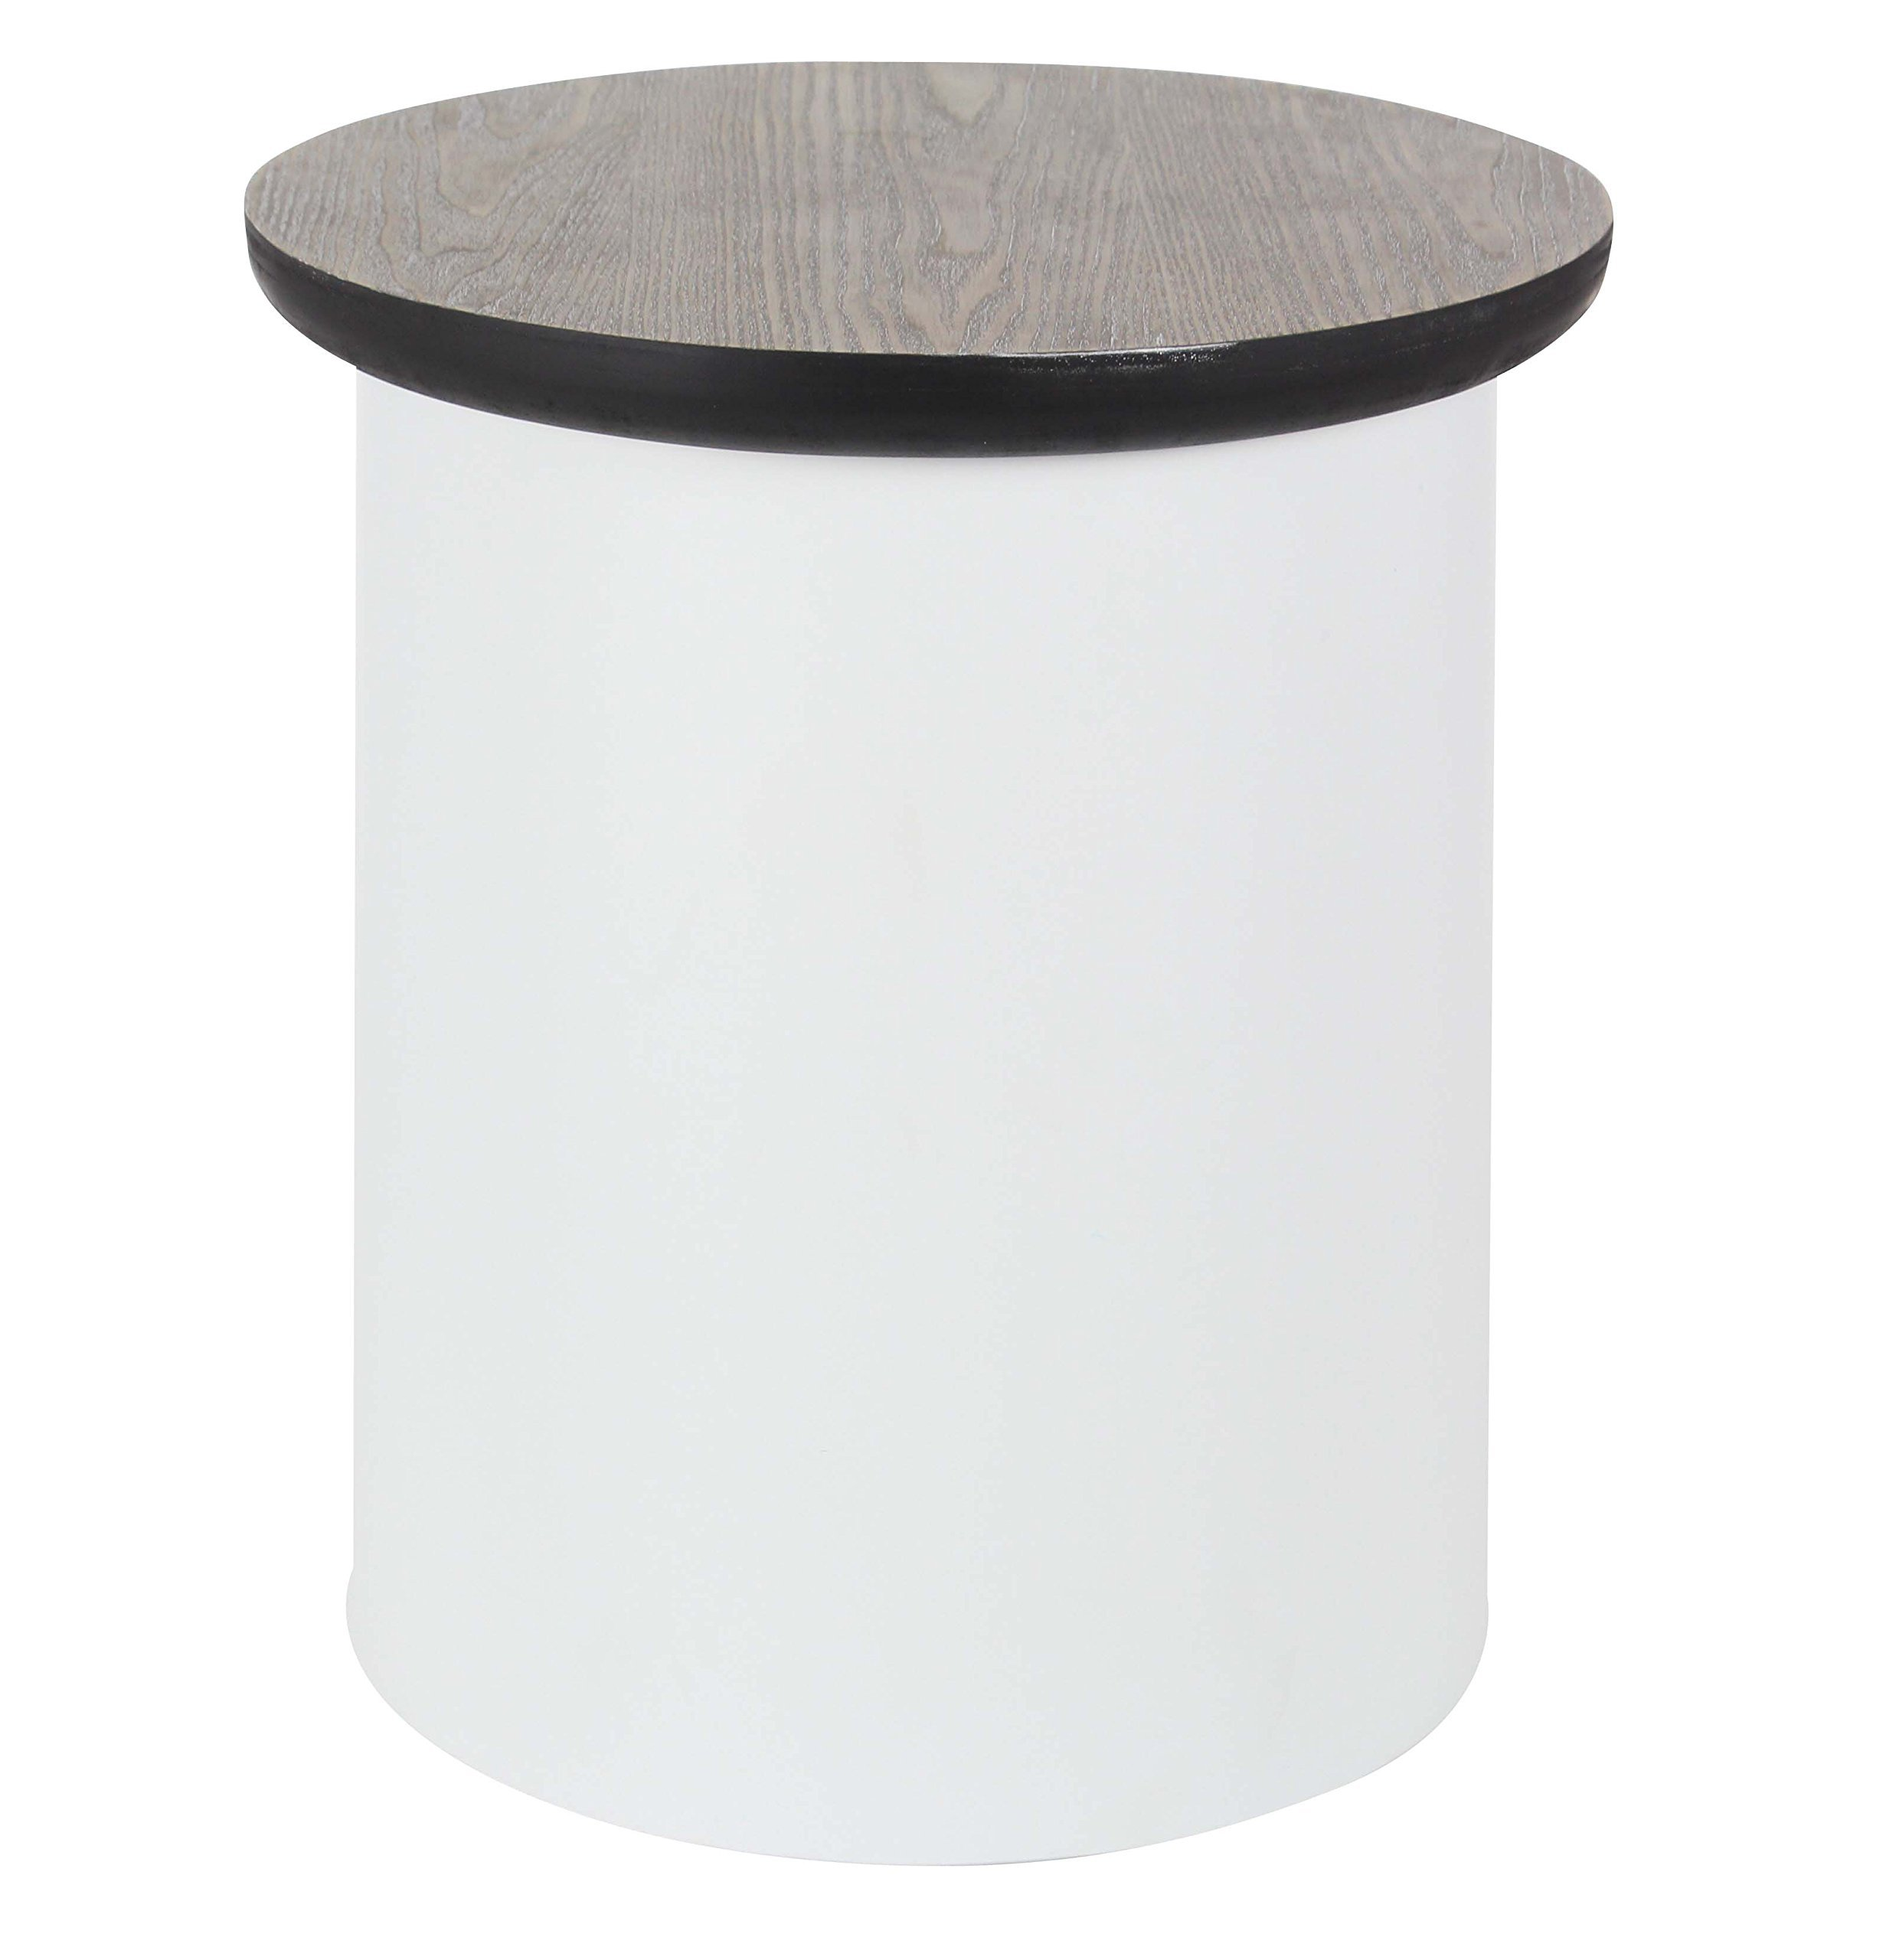 Deco 79 Metal and Wood Table, 20'' x 17'', Black/White